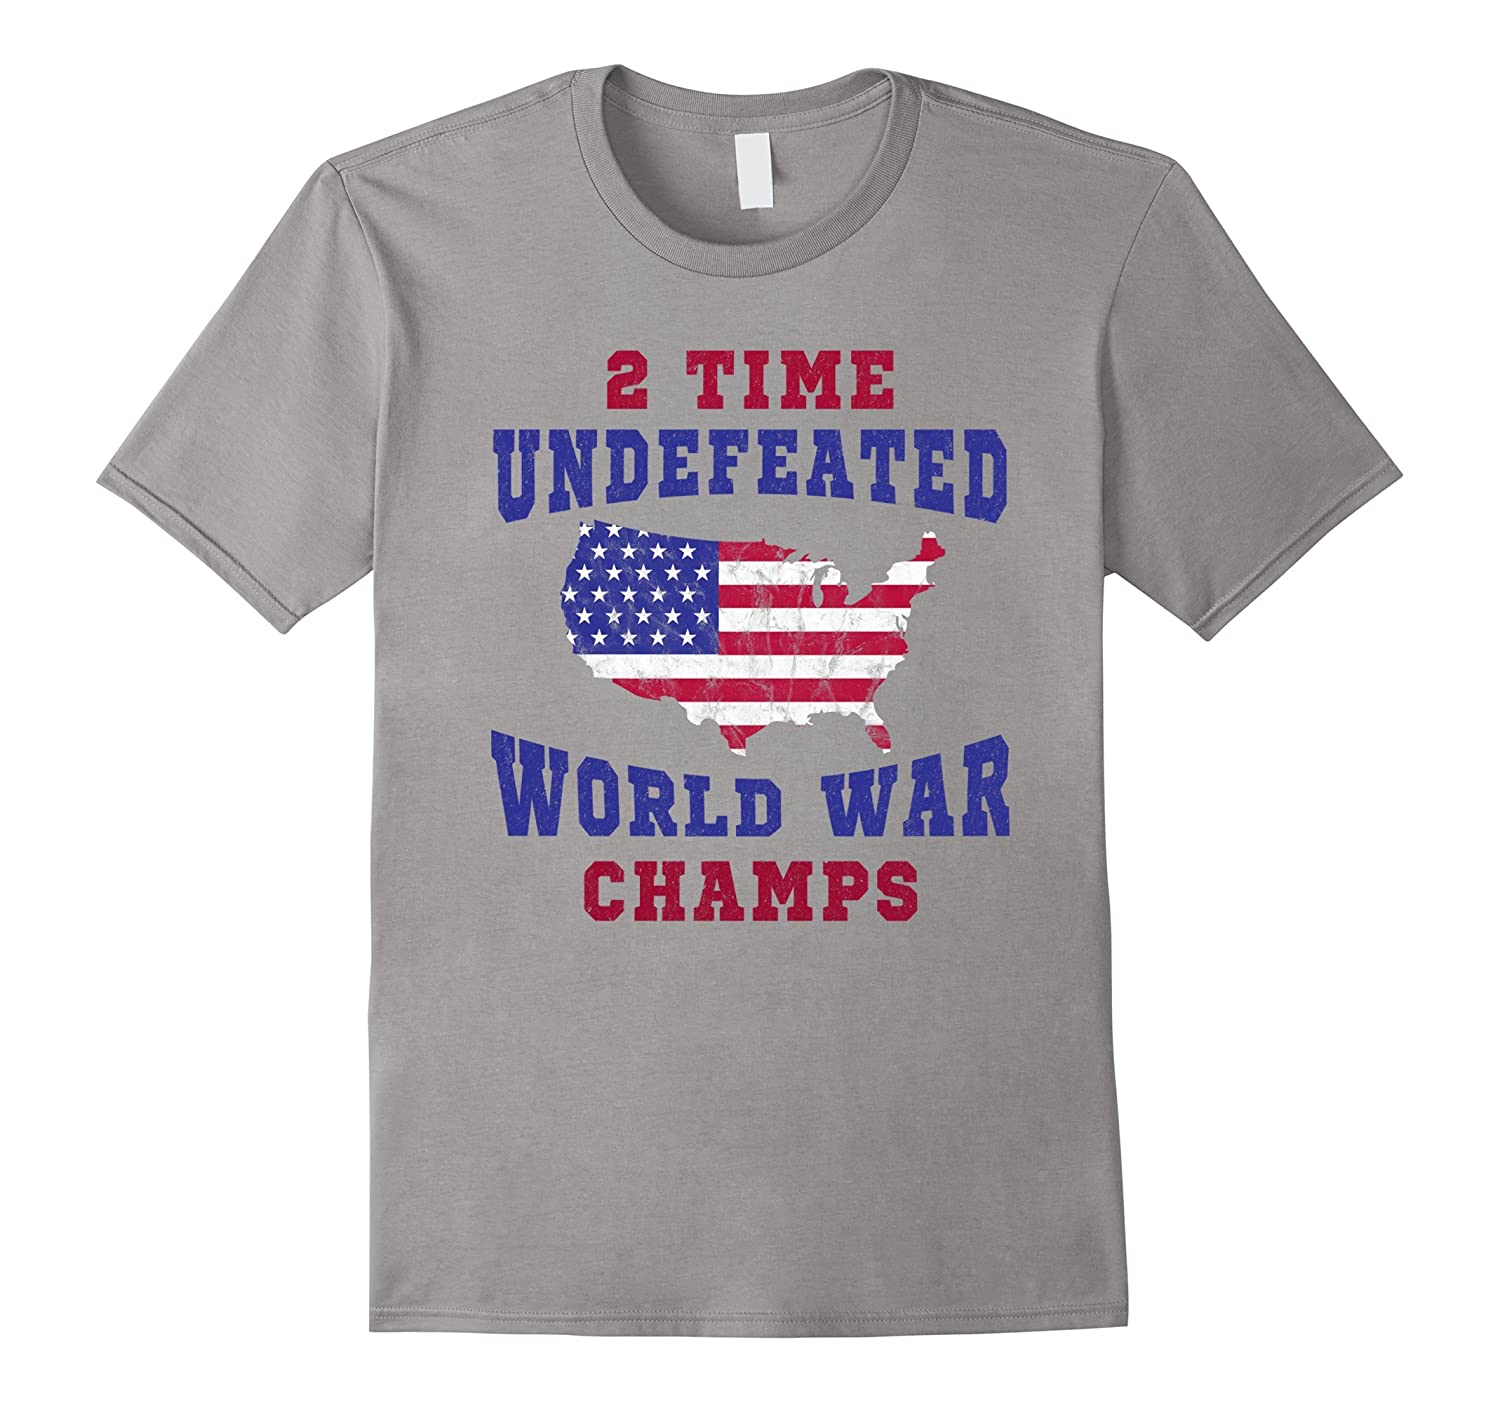 WW1 and WW2 Champions Shirt Funny Patriotic 4th of July-PL